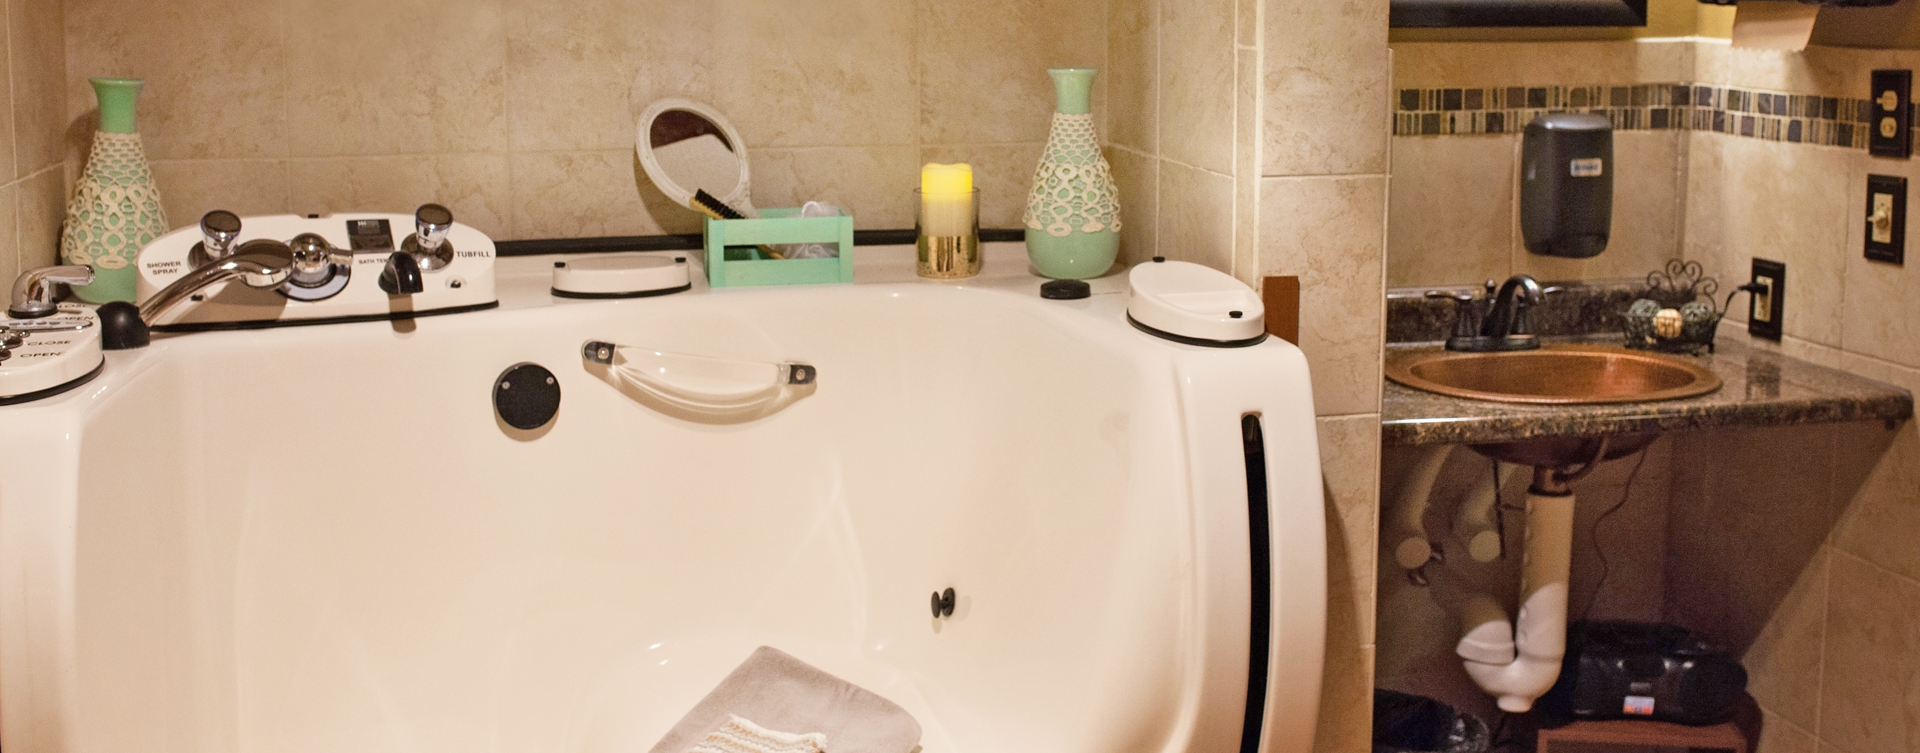 With an easy access design, our whirlpool allows you to enjoy a warm bath safely and comfortably at Bickford of Cedar Falls